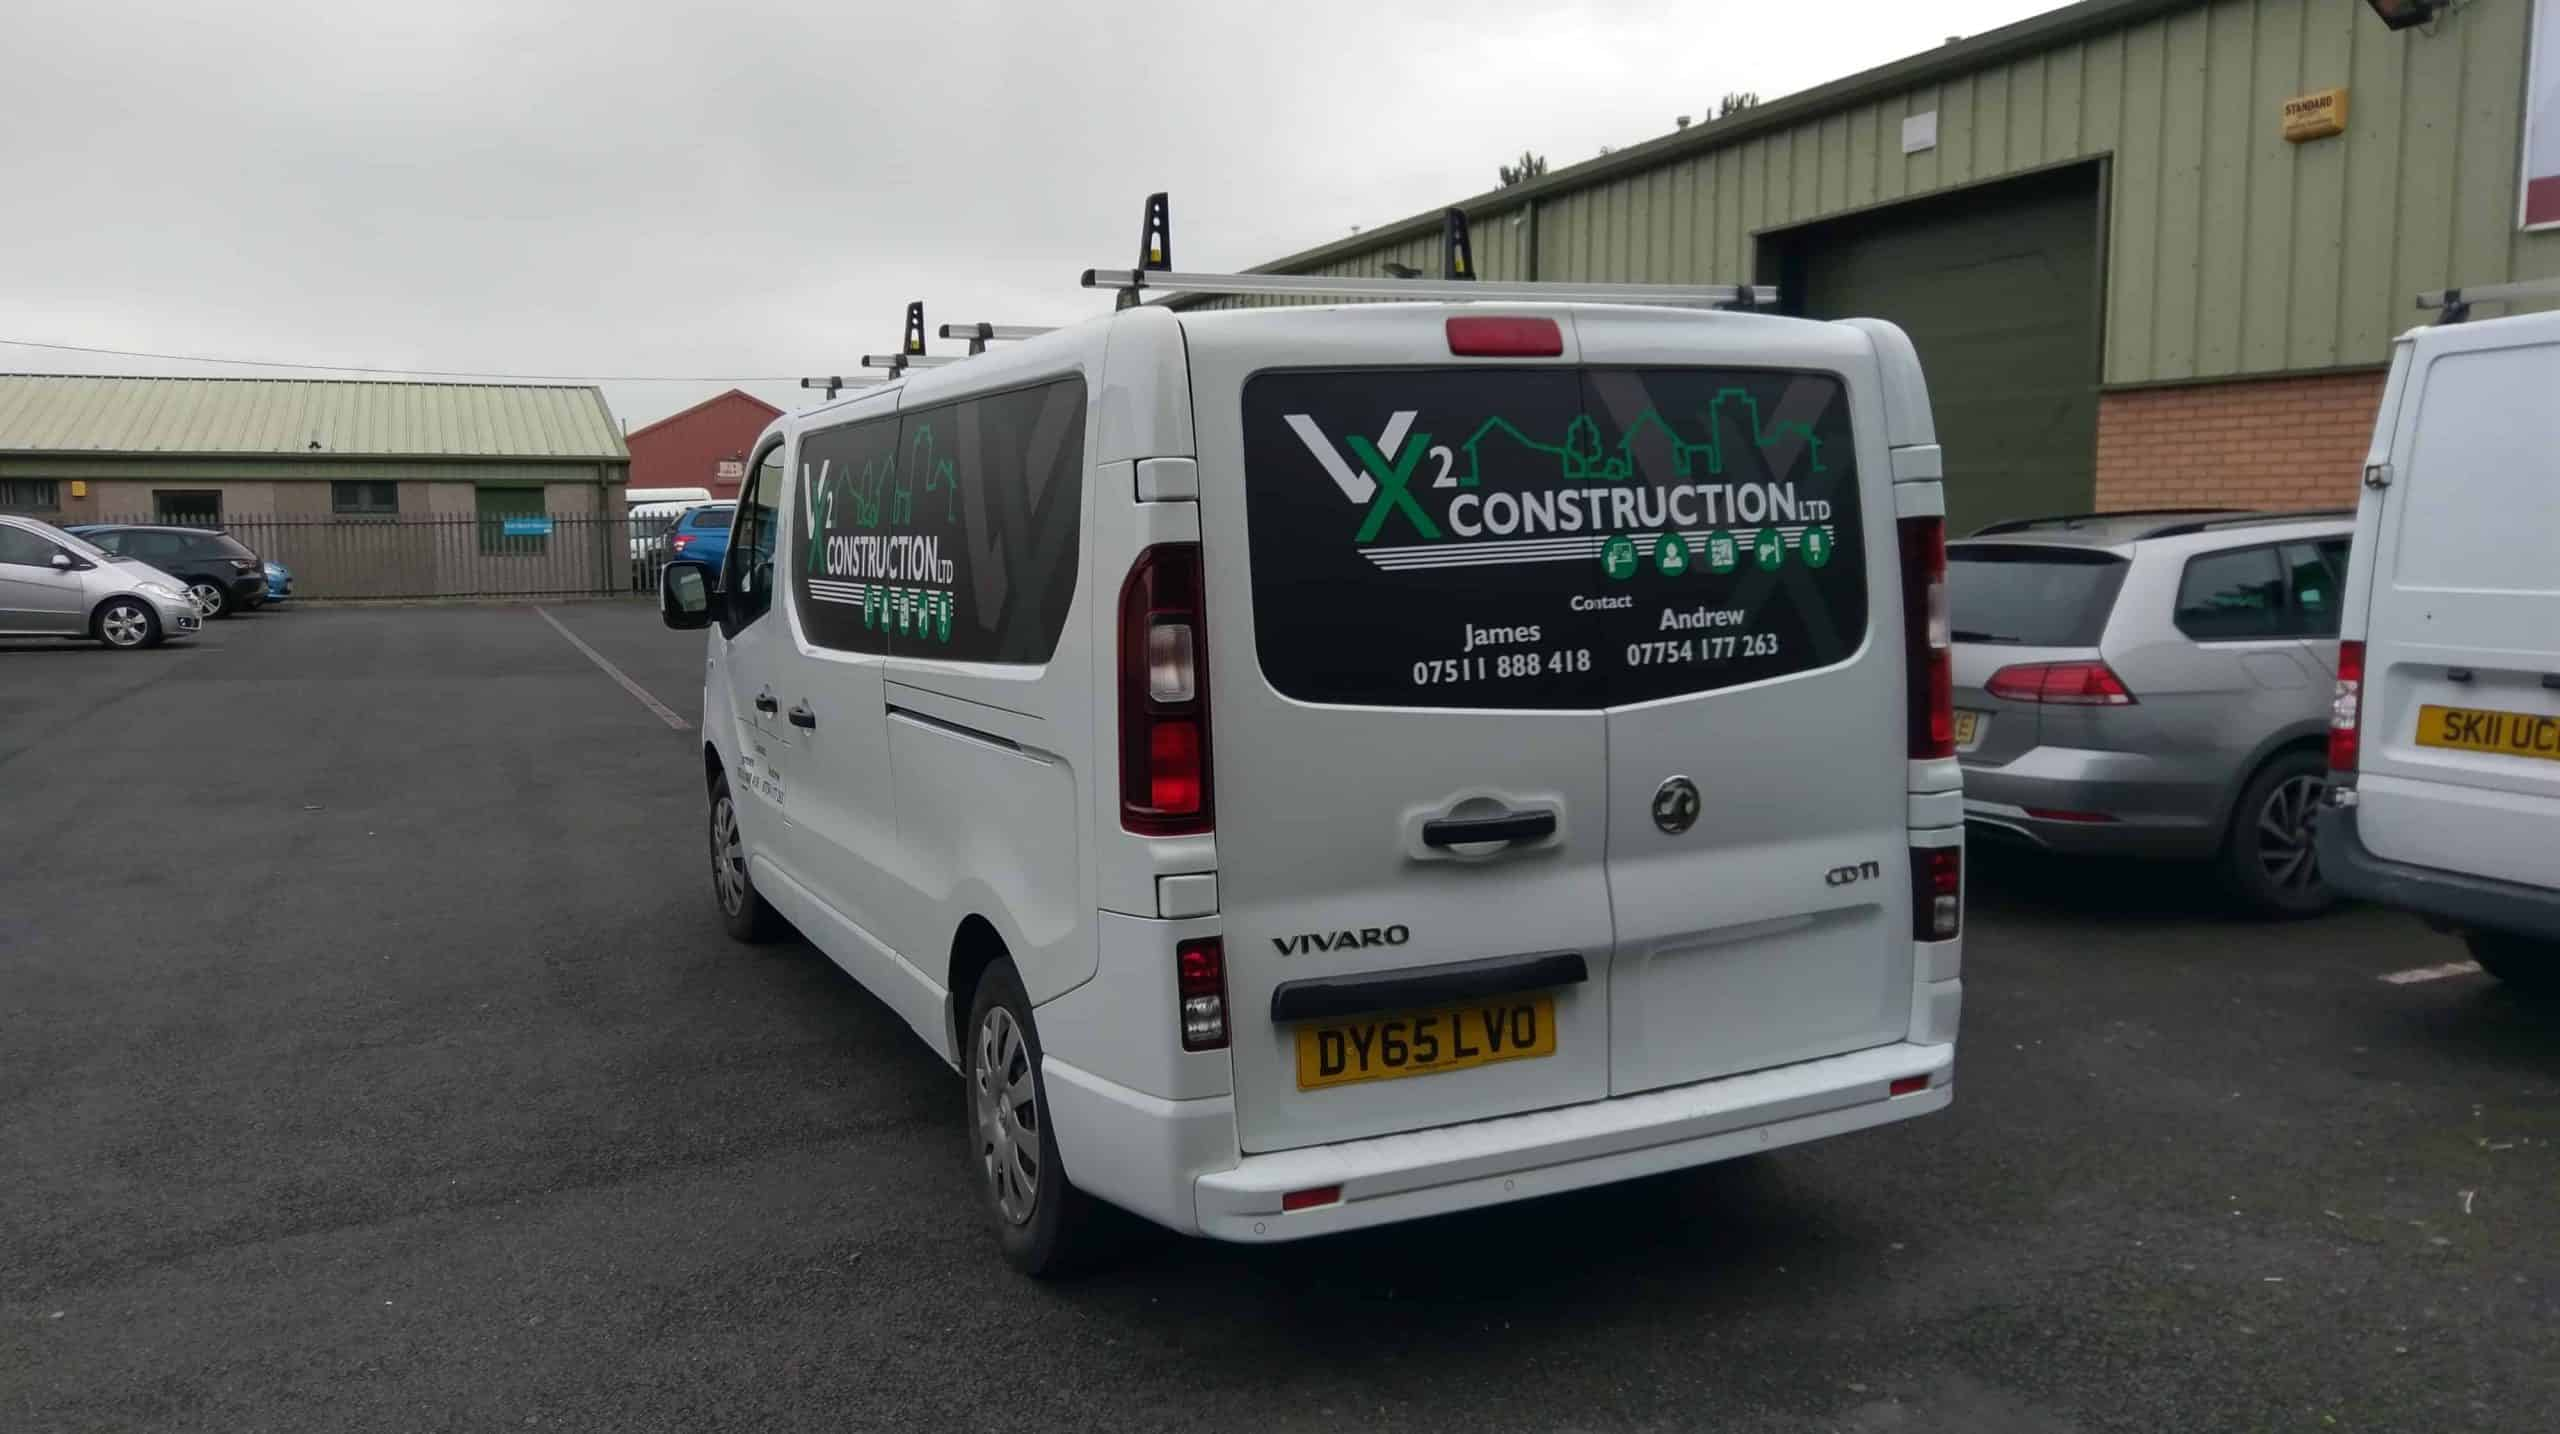 VX2 Construction New Van Livery